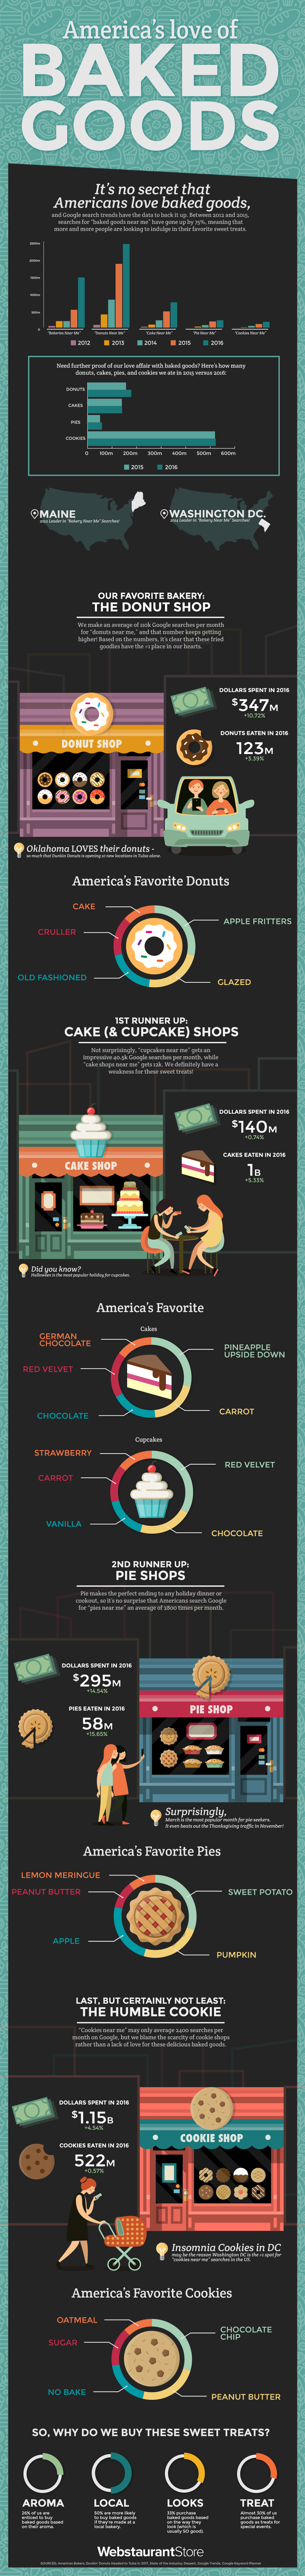 America's Love of Baked Goods